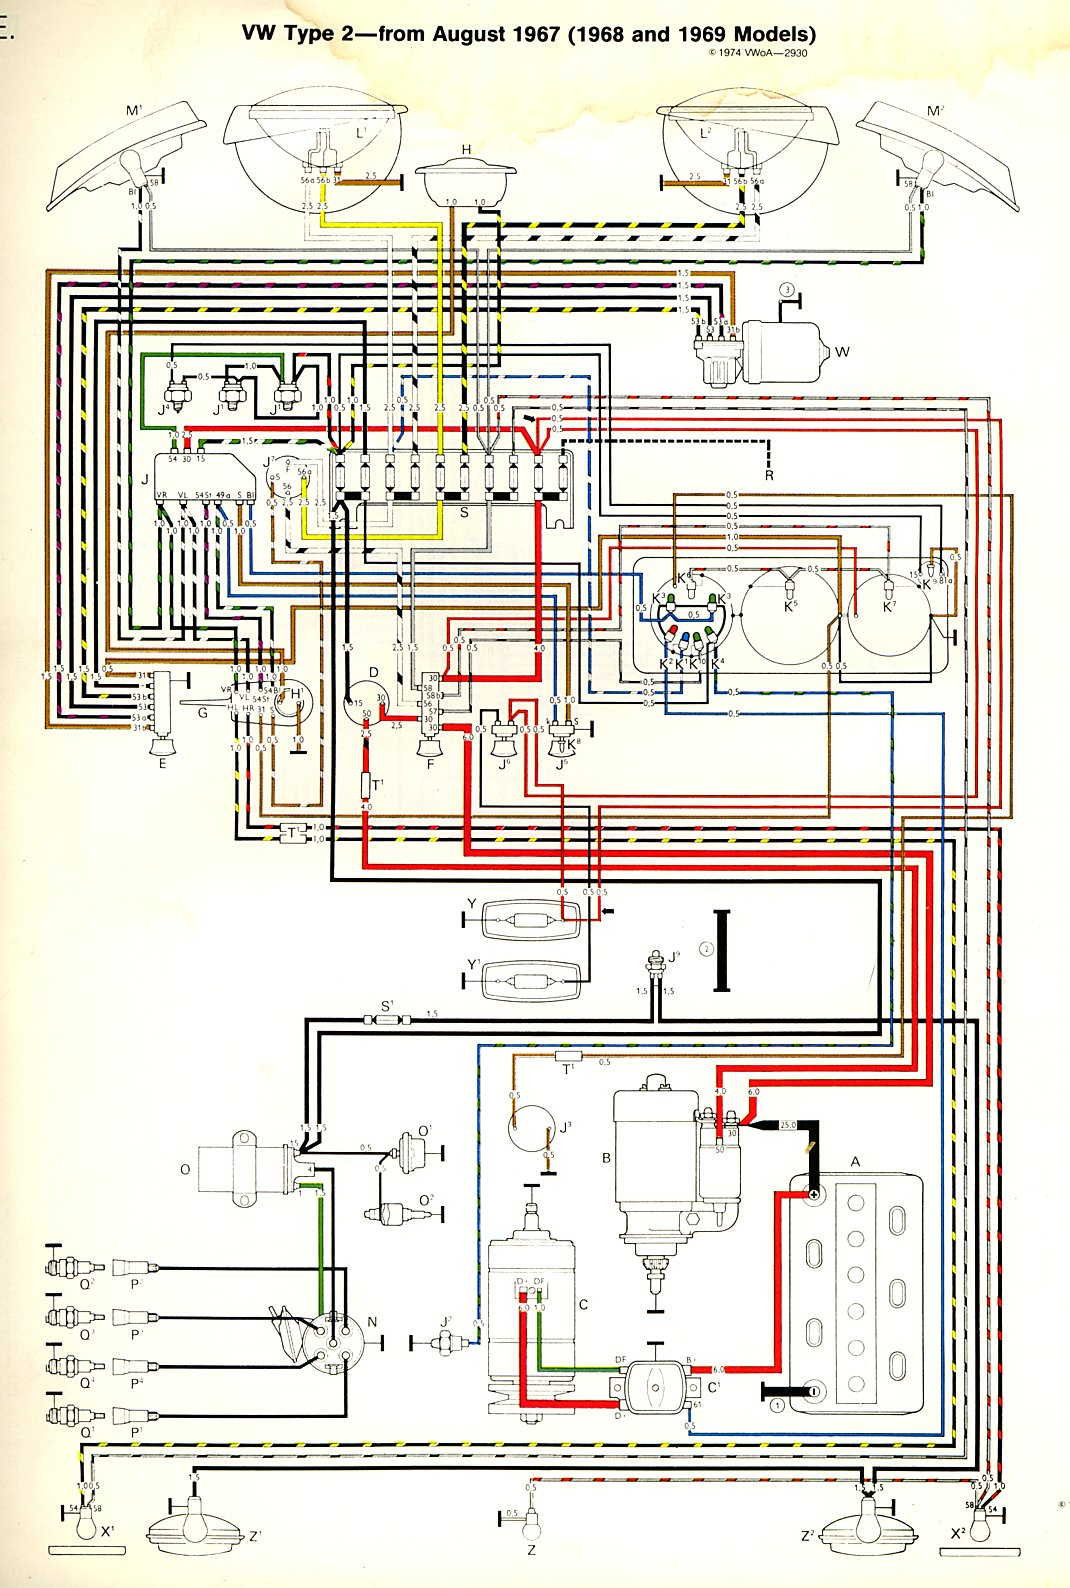 baybus_6869a 1968 69 bus wiring diagram thegoldenbug com 1968 vw bug headlight wiring diagram at metegol.co